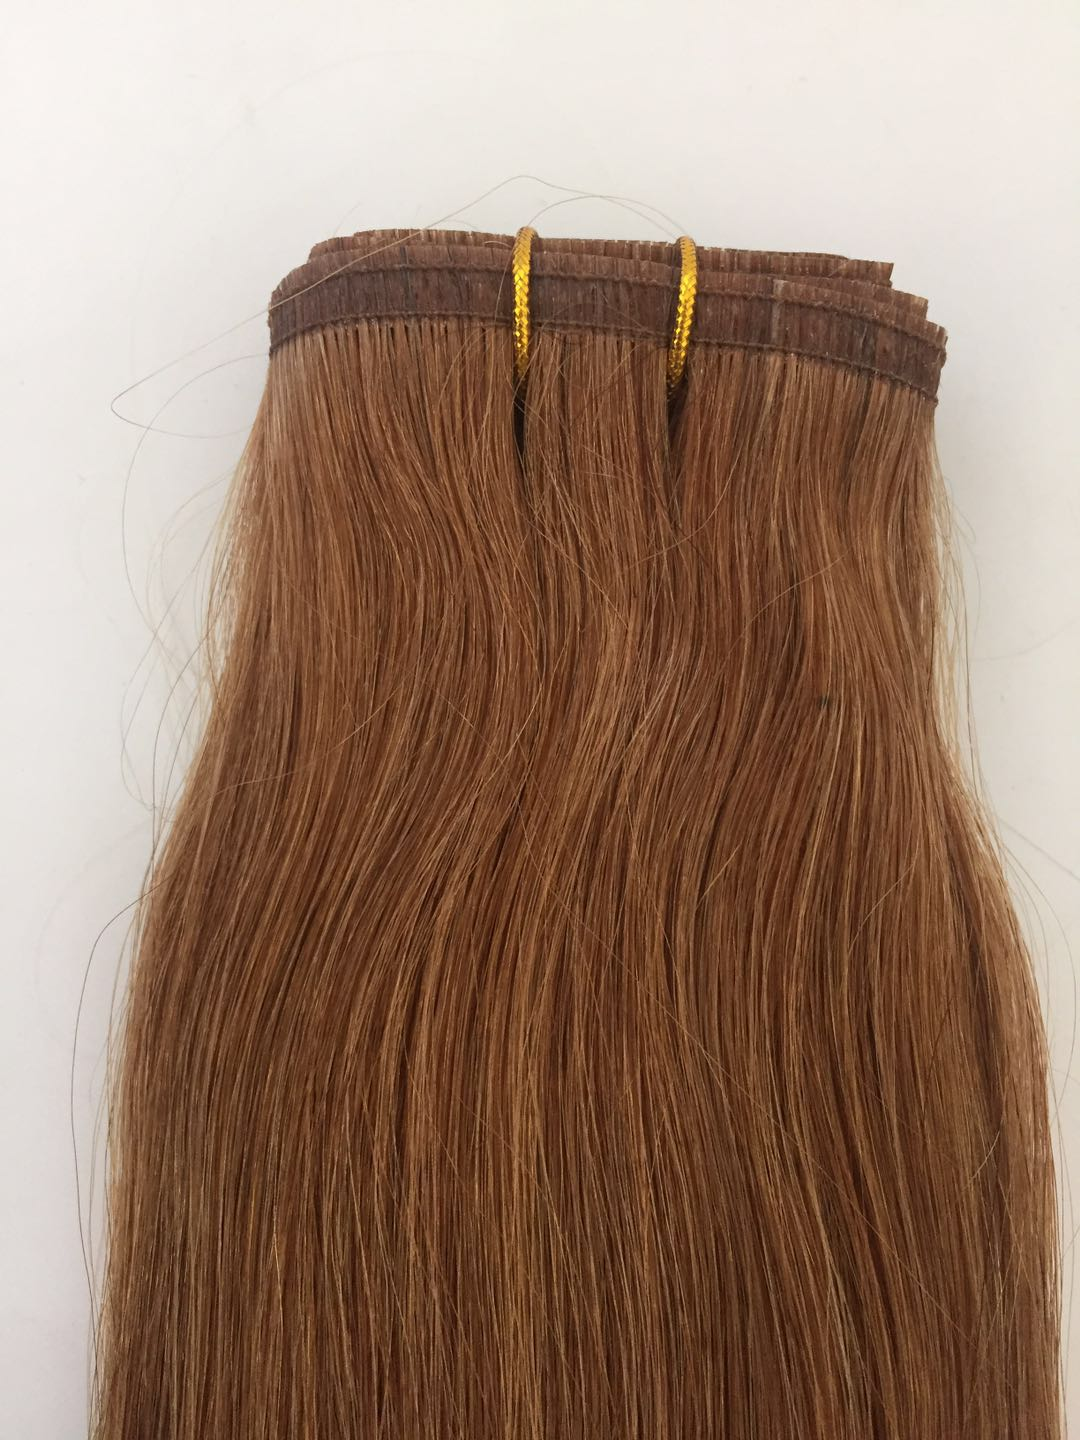 Russian/Mogolian No Shedding Double Drawn Seamless Pu Flat Weft Hair Extension QM188